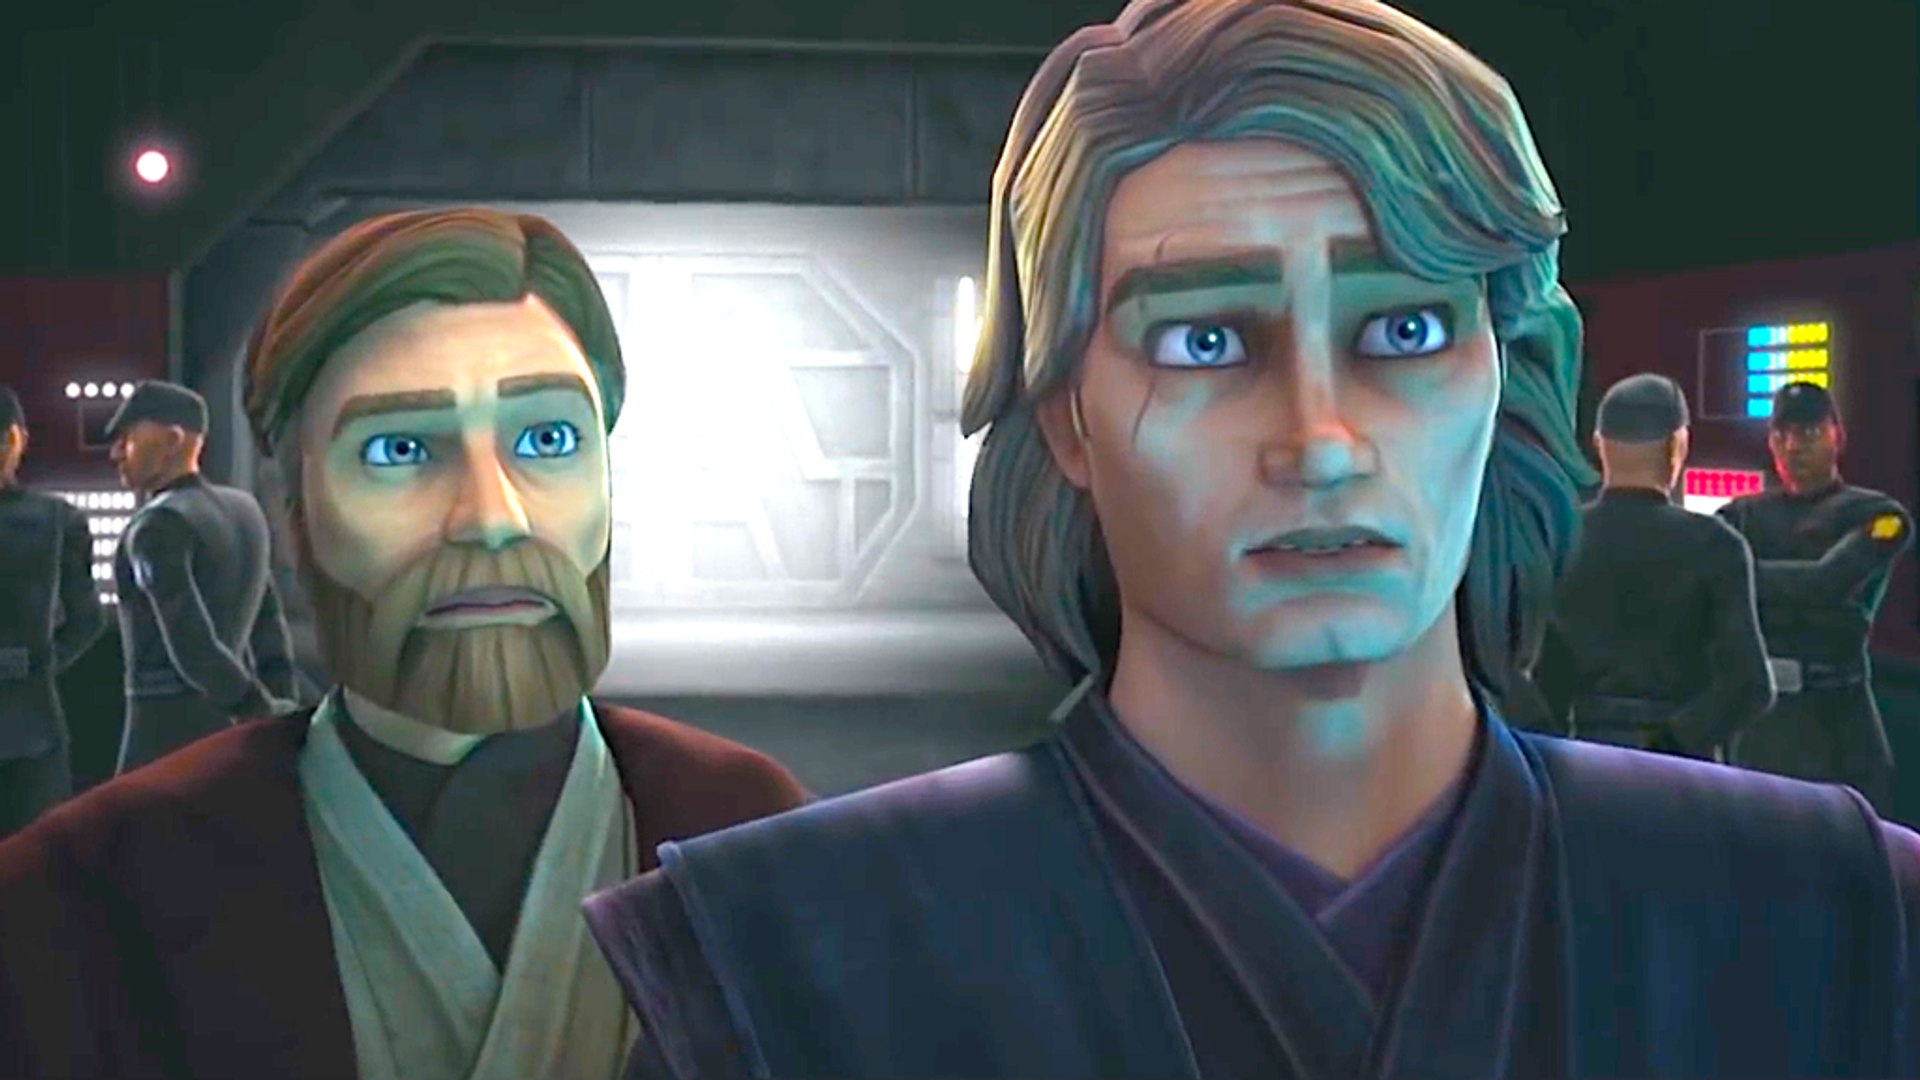 Star Wars: The Clone Wars - Official Comic-Con 2018 Trailer